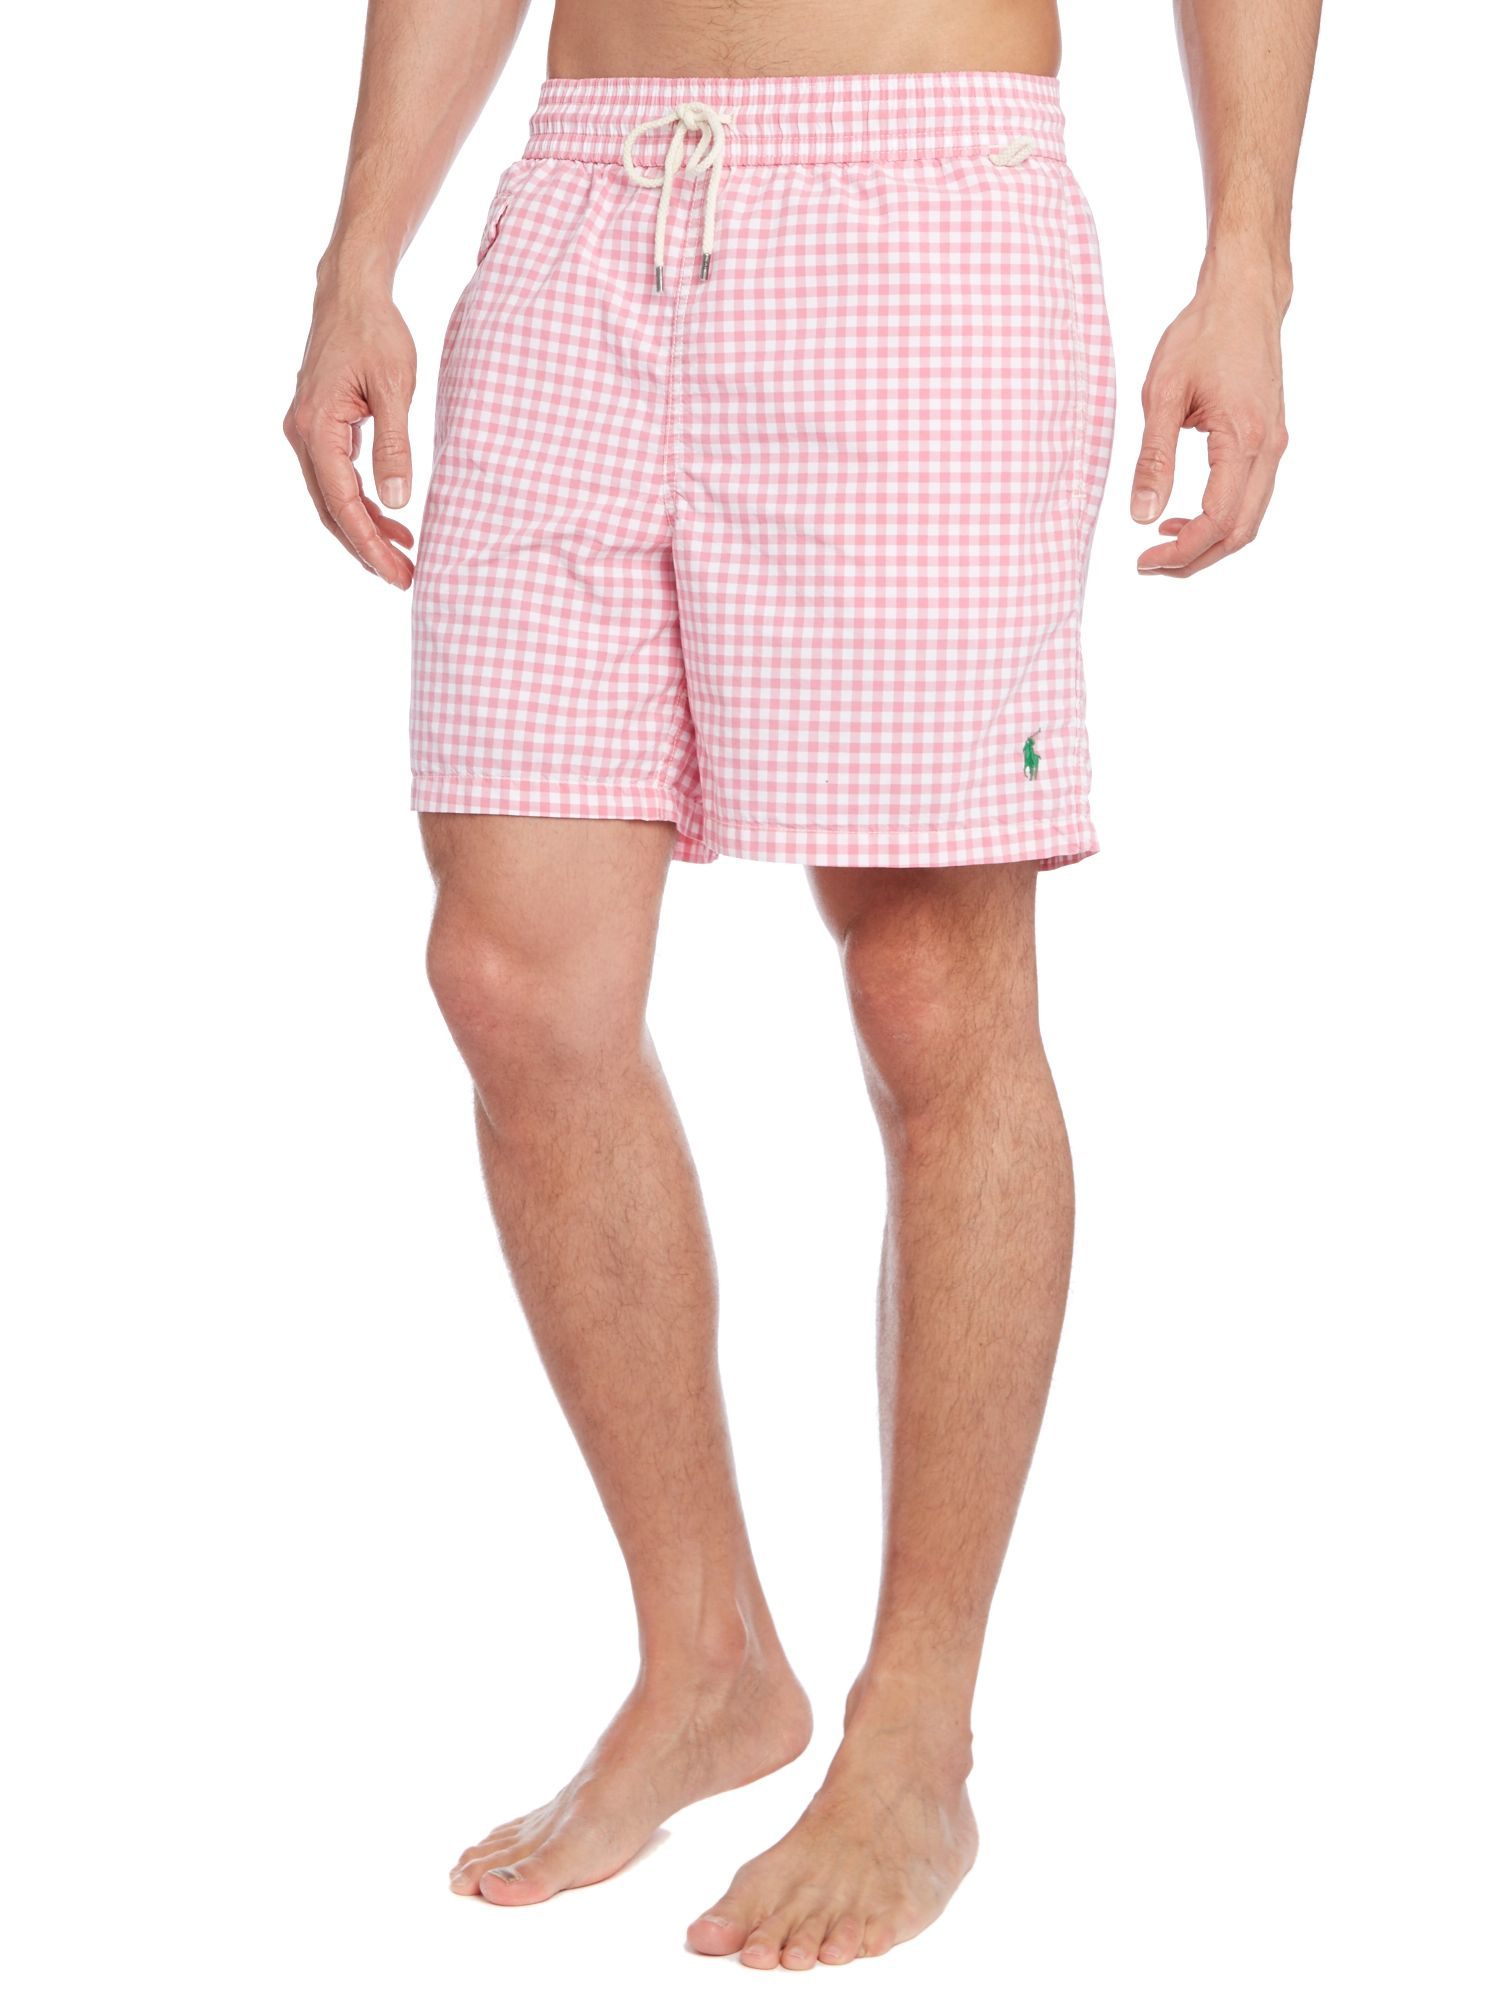 Gingham swim short